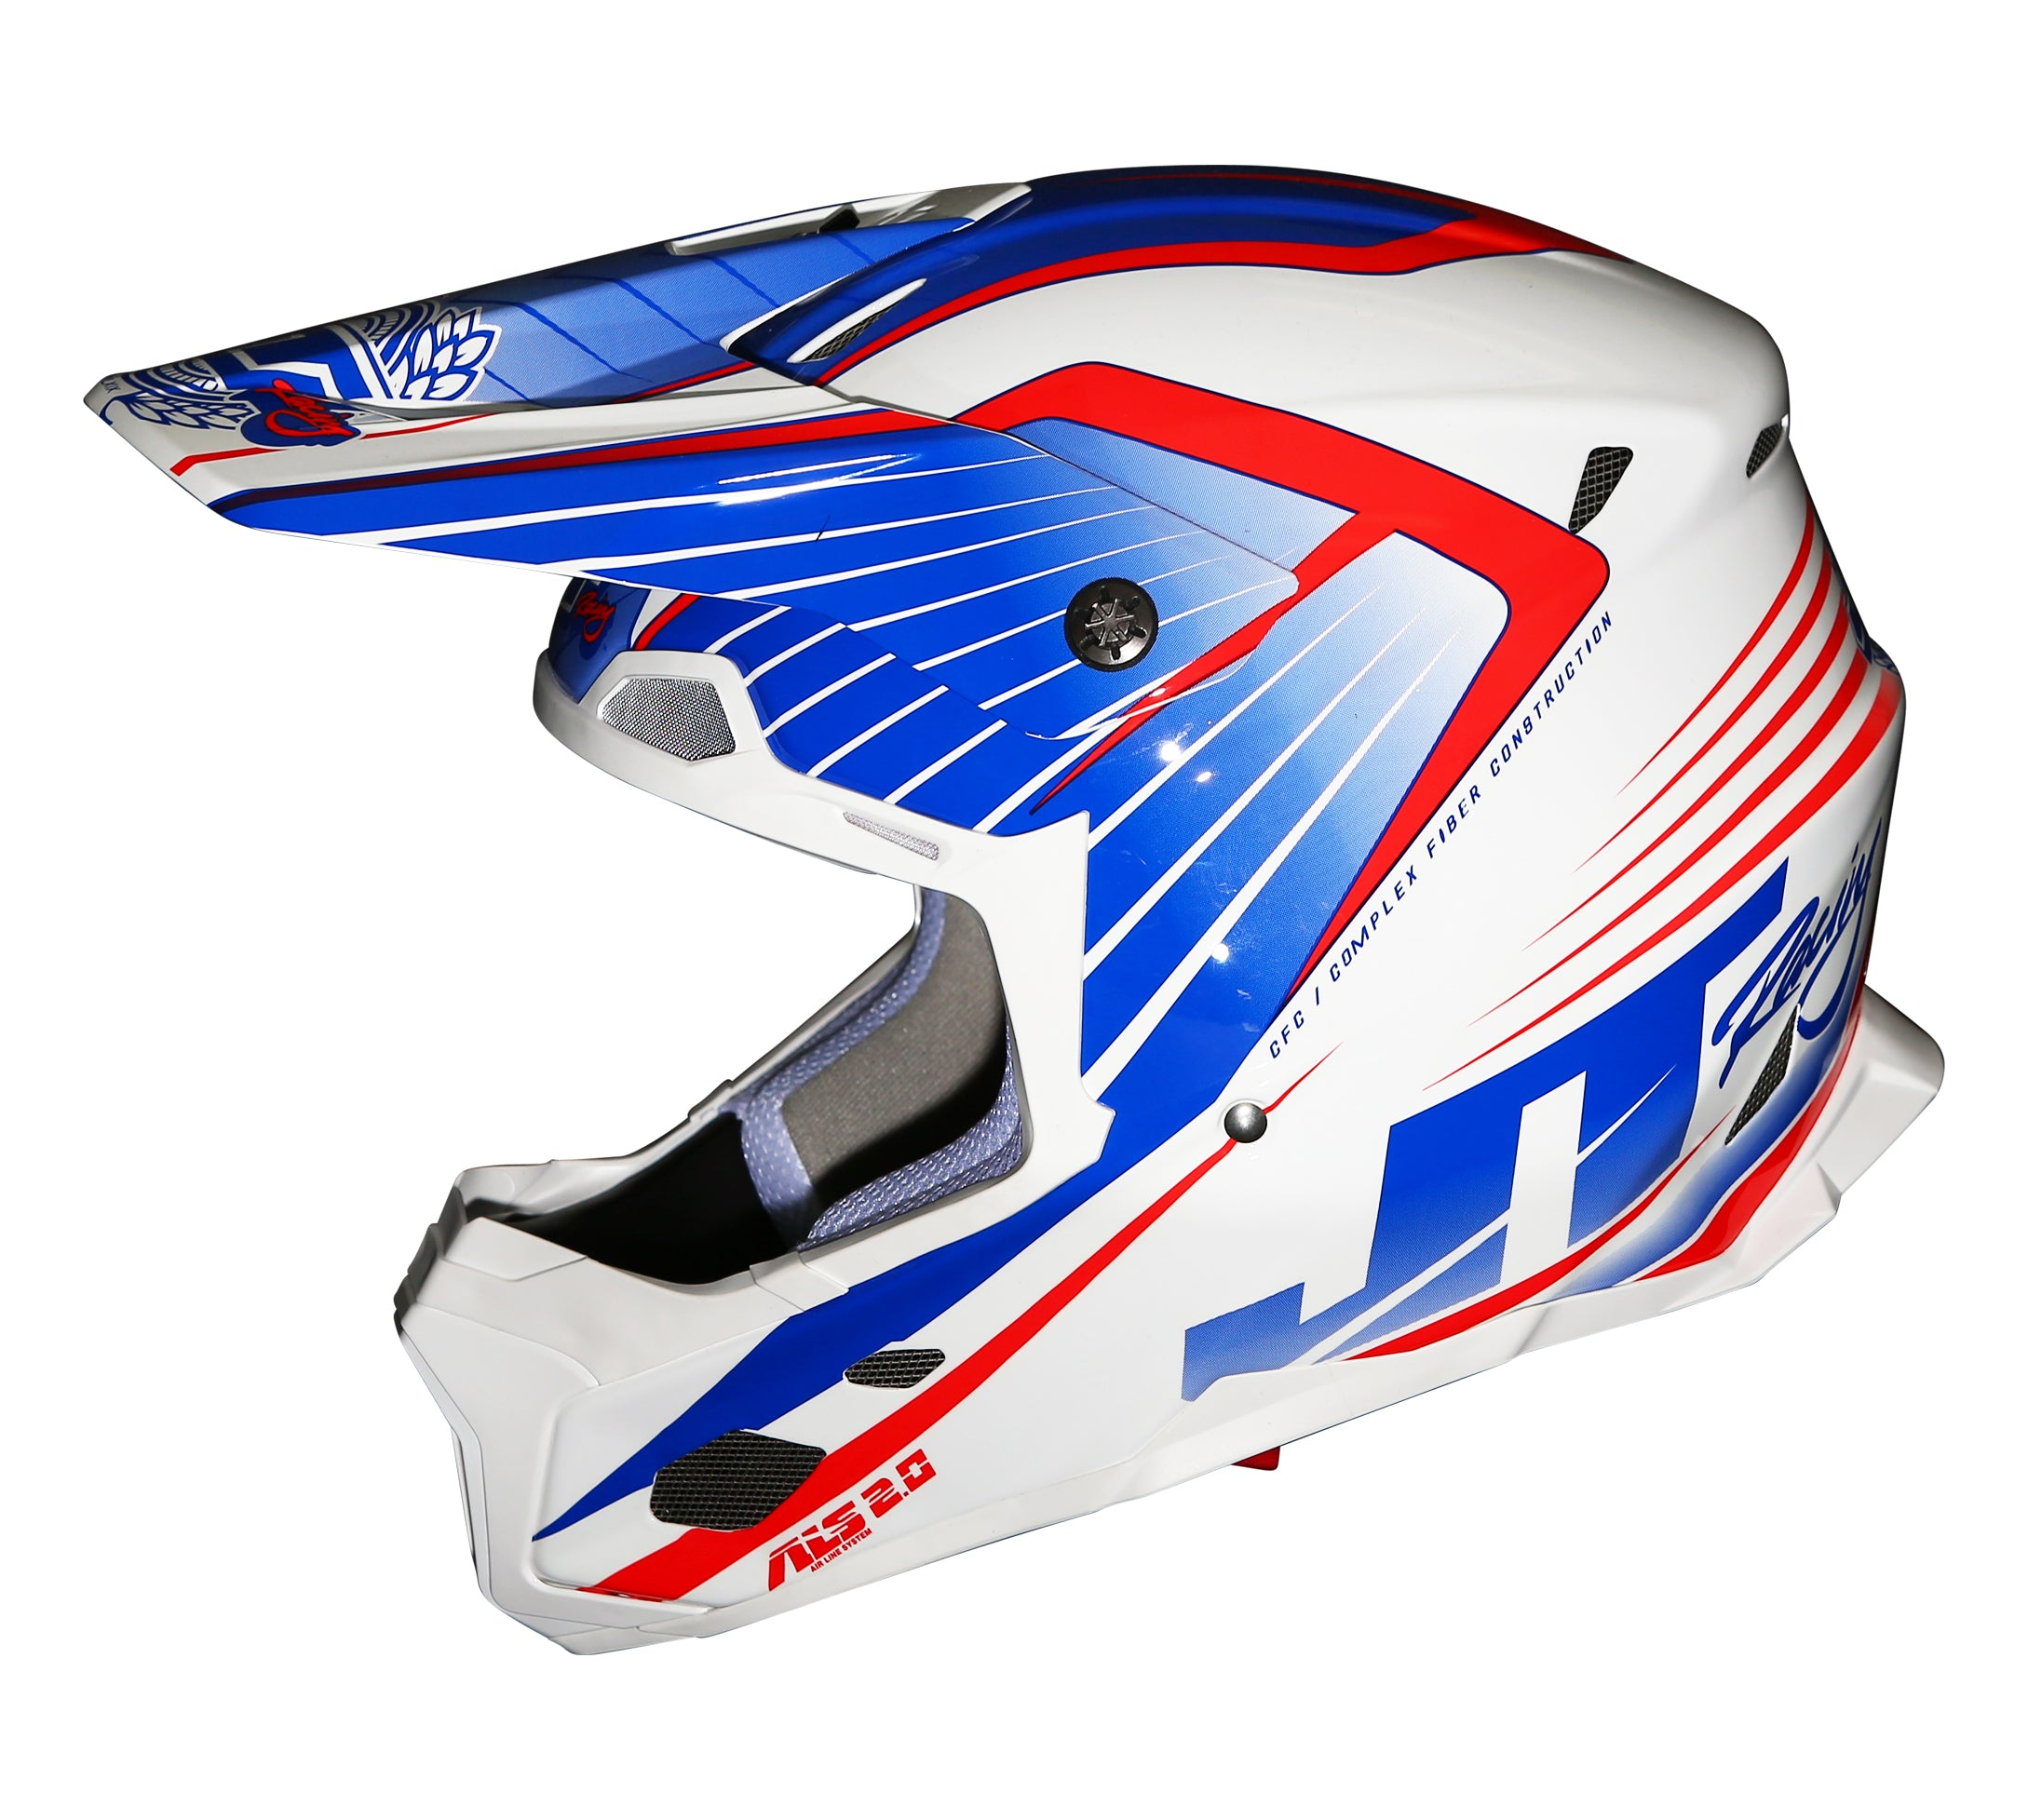 JT RACING USA- ALS 2.0 Helmet, Blue/White/Red